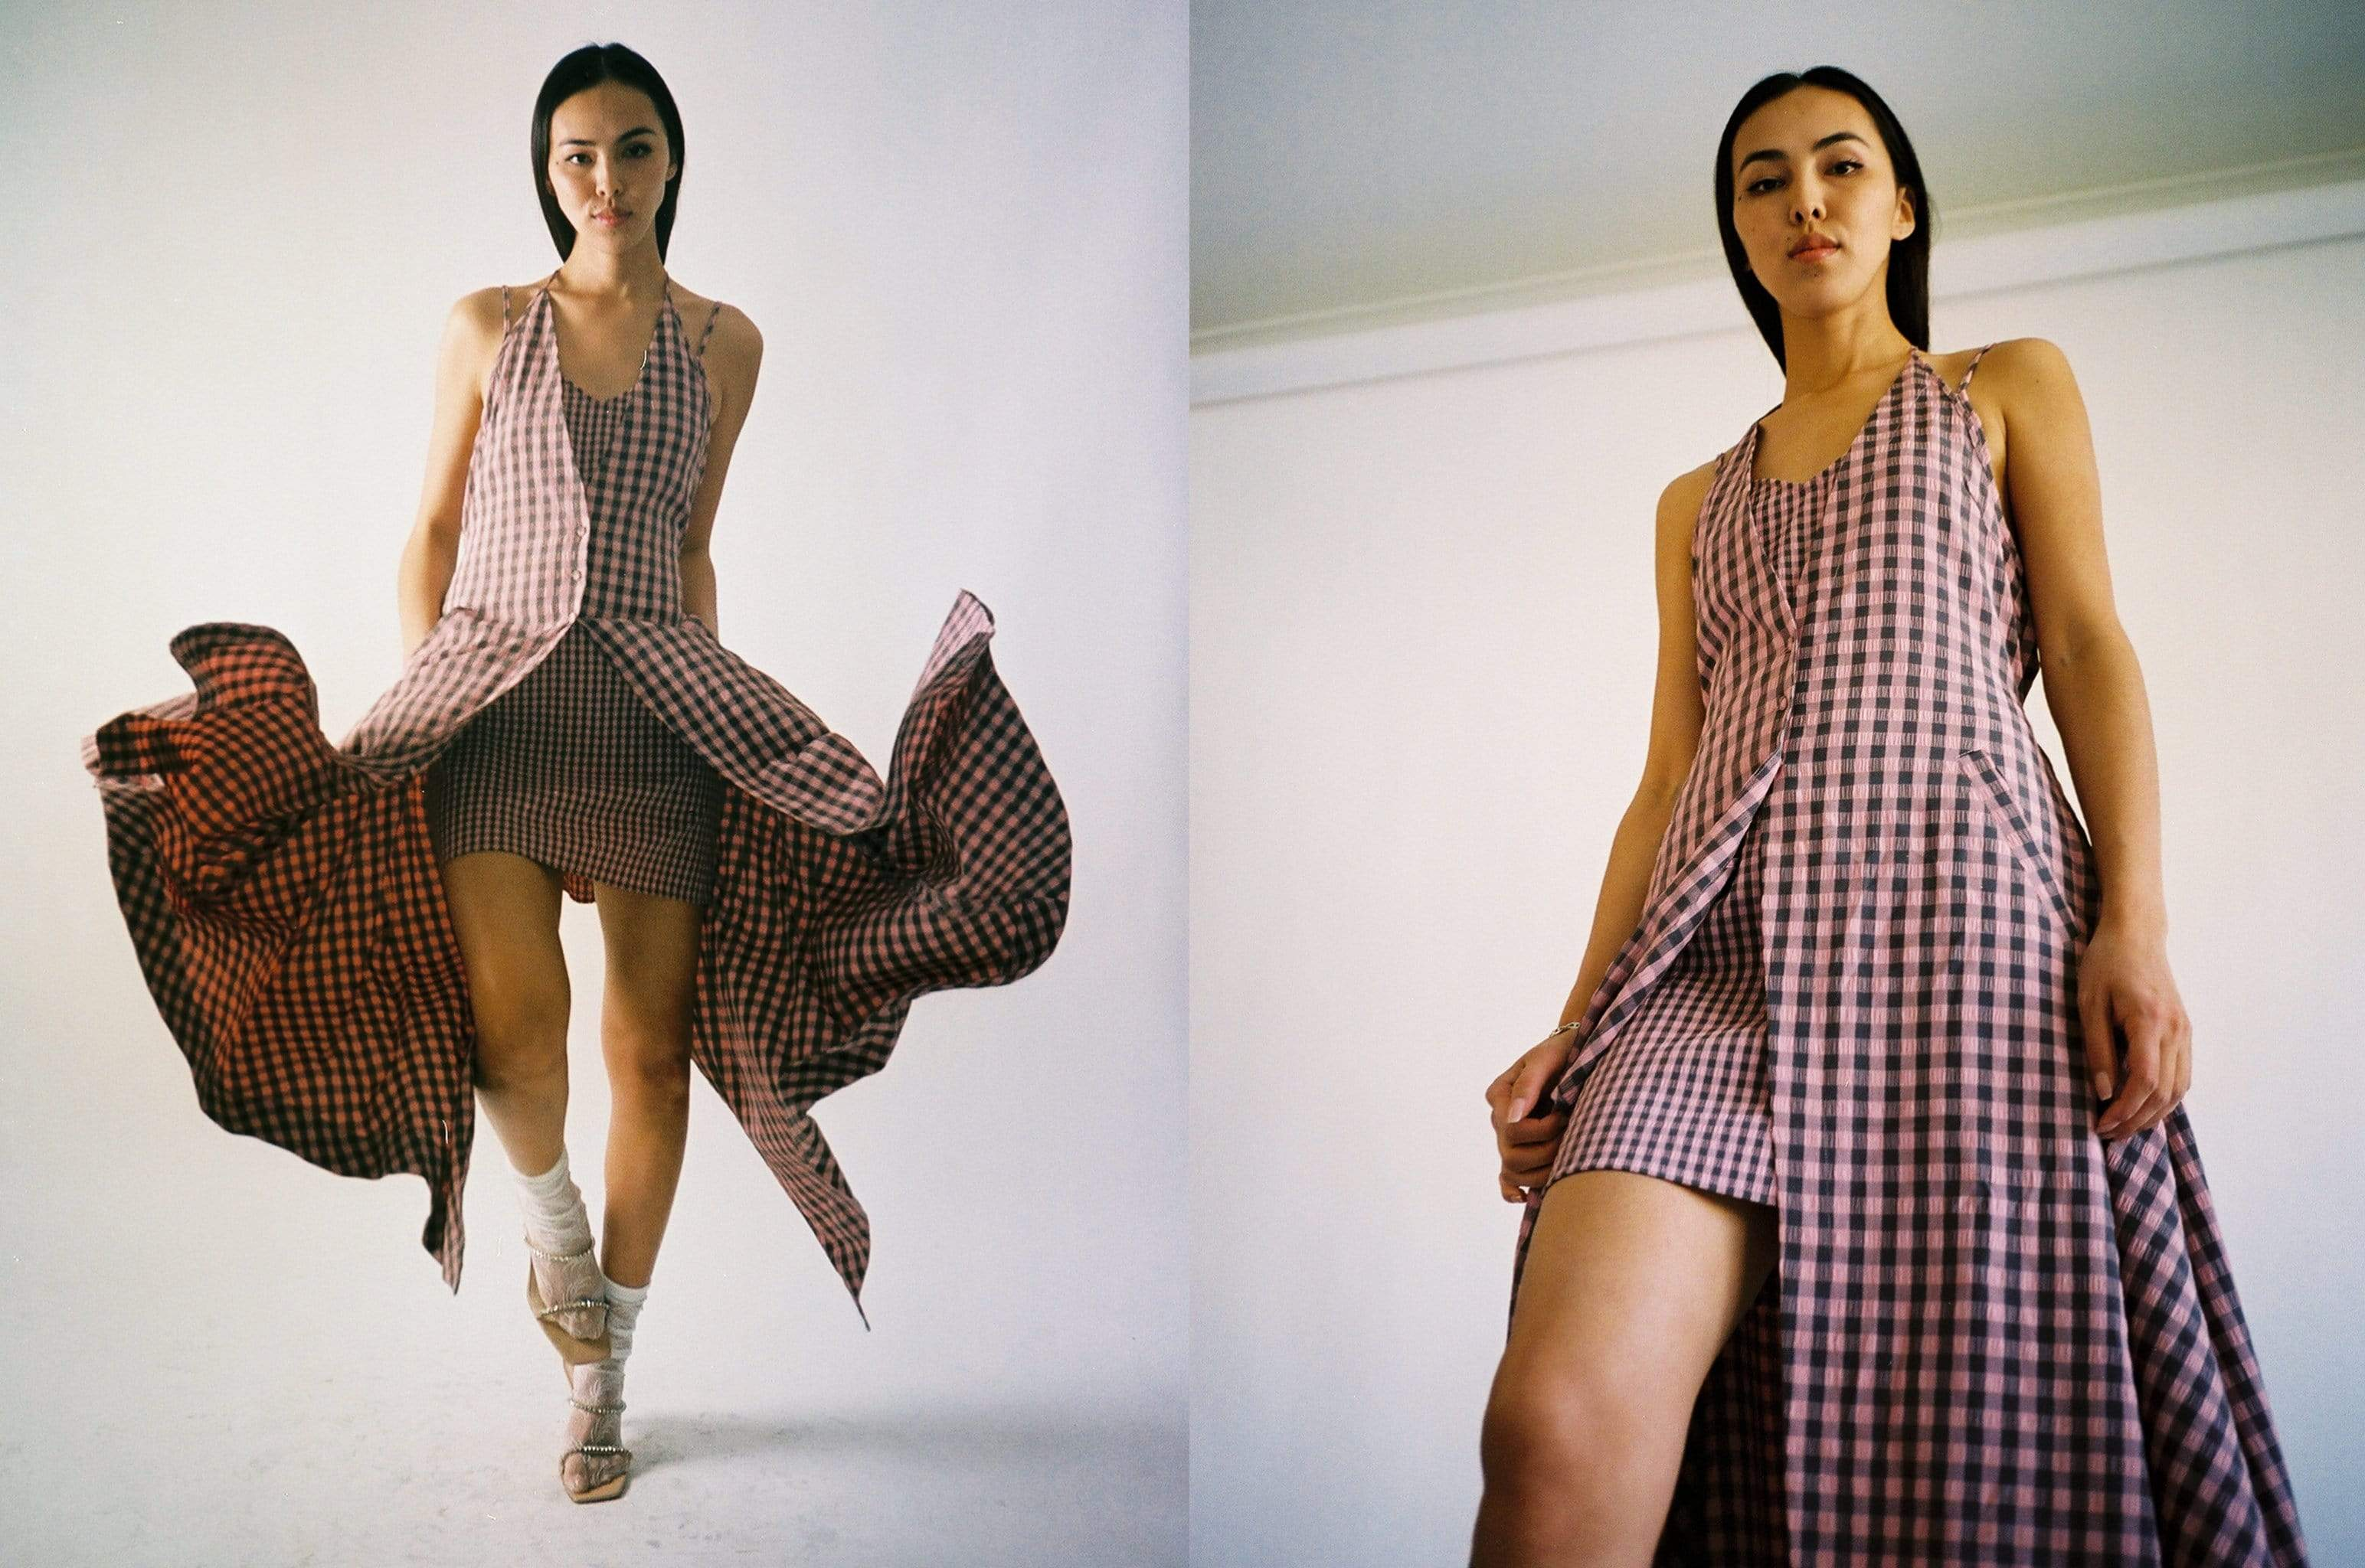 Maimoun Eckhaus Latta Hibiscus Double Dress